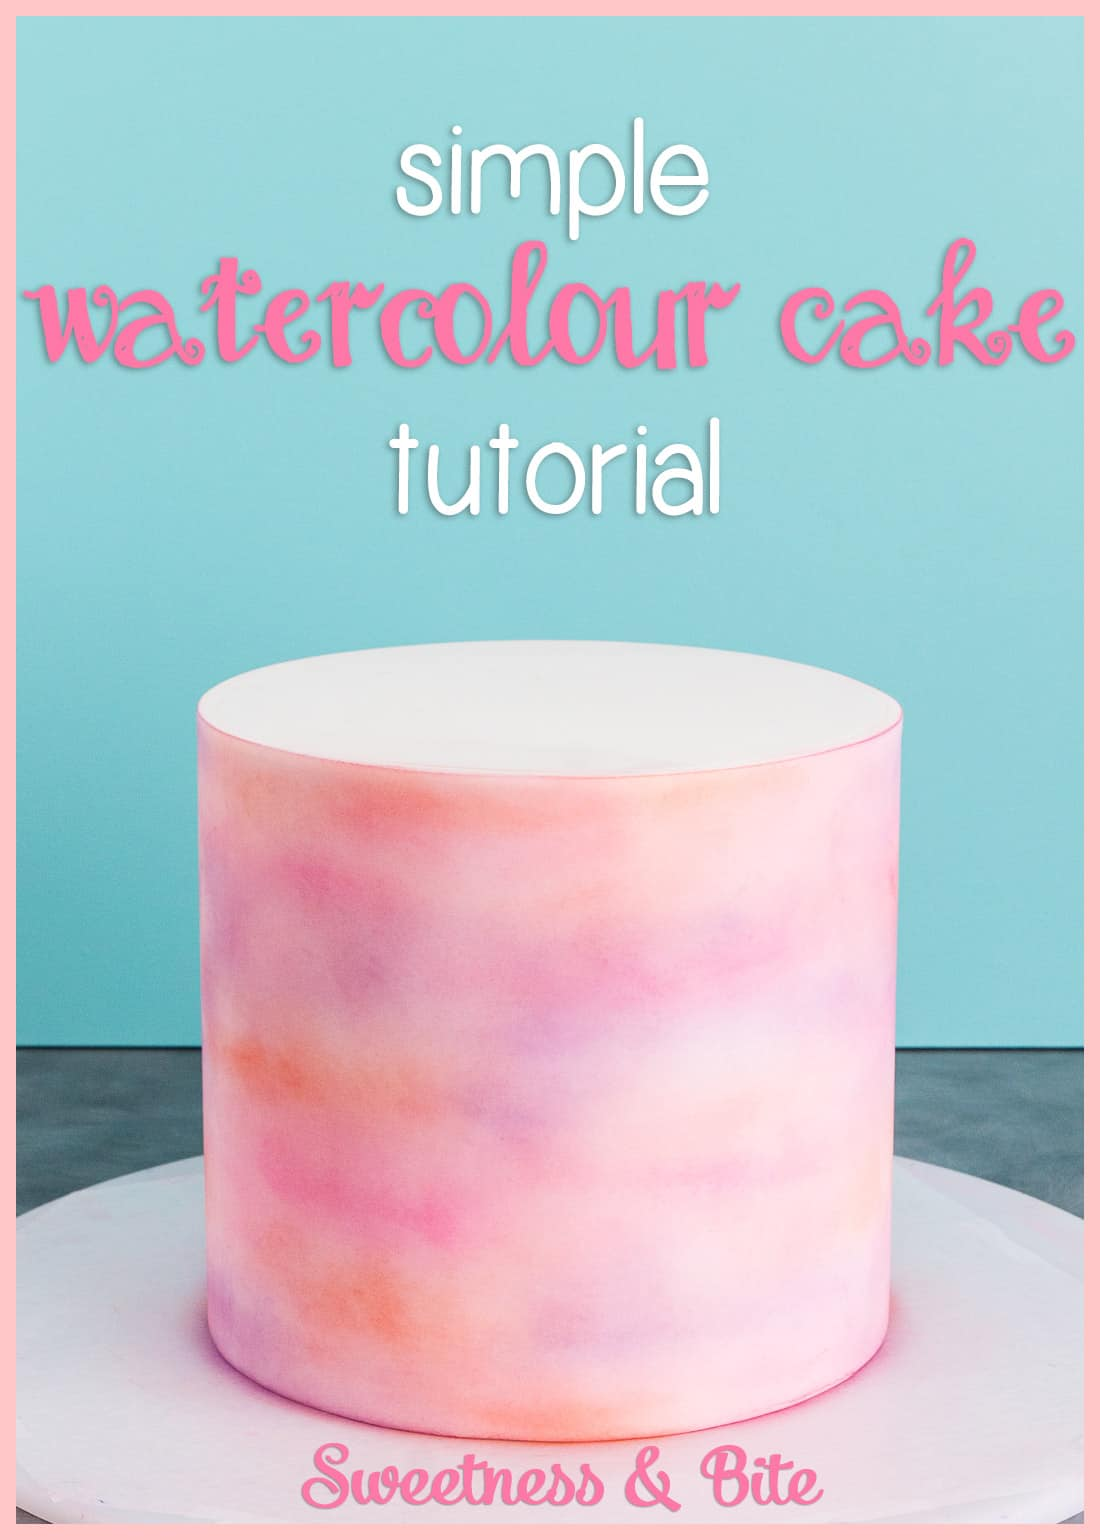 A watercolour fondant cake, in shades of pink, peach and purple.